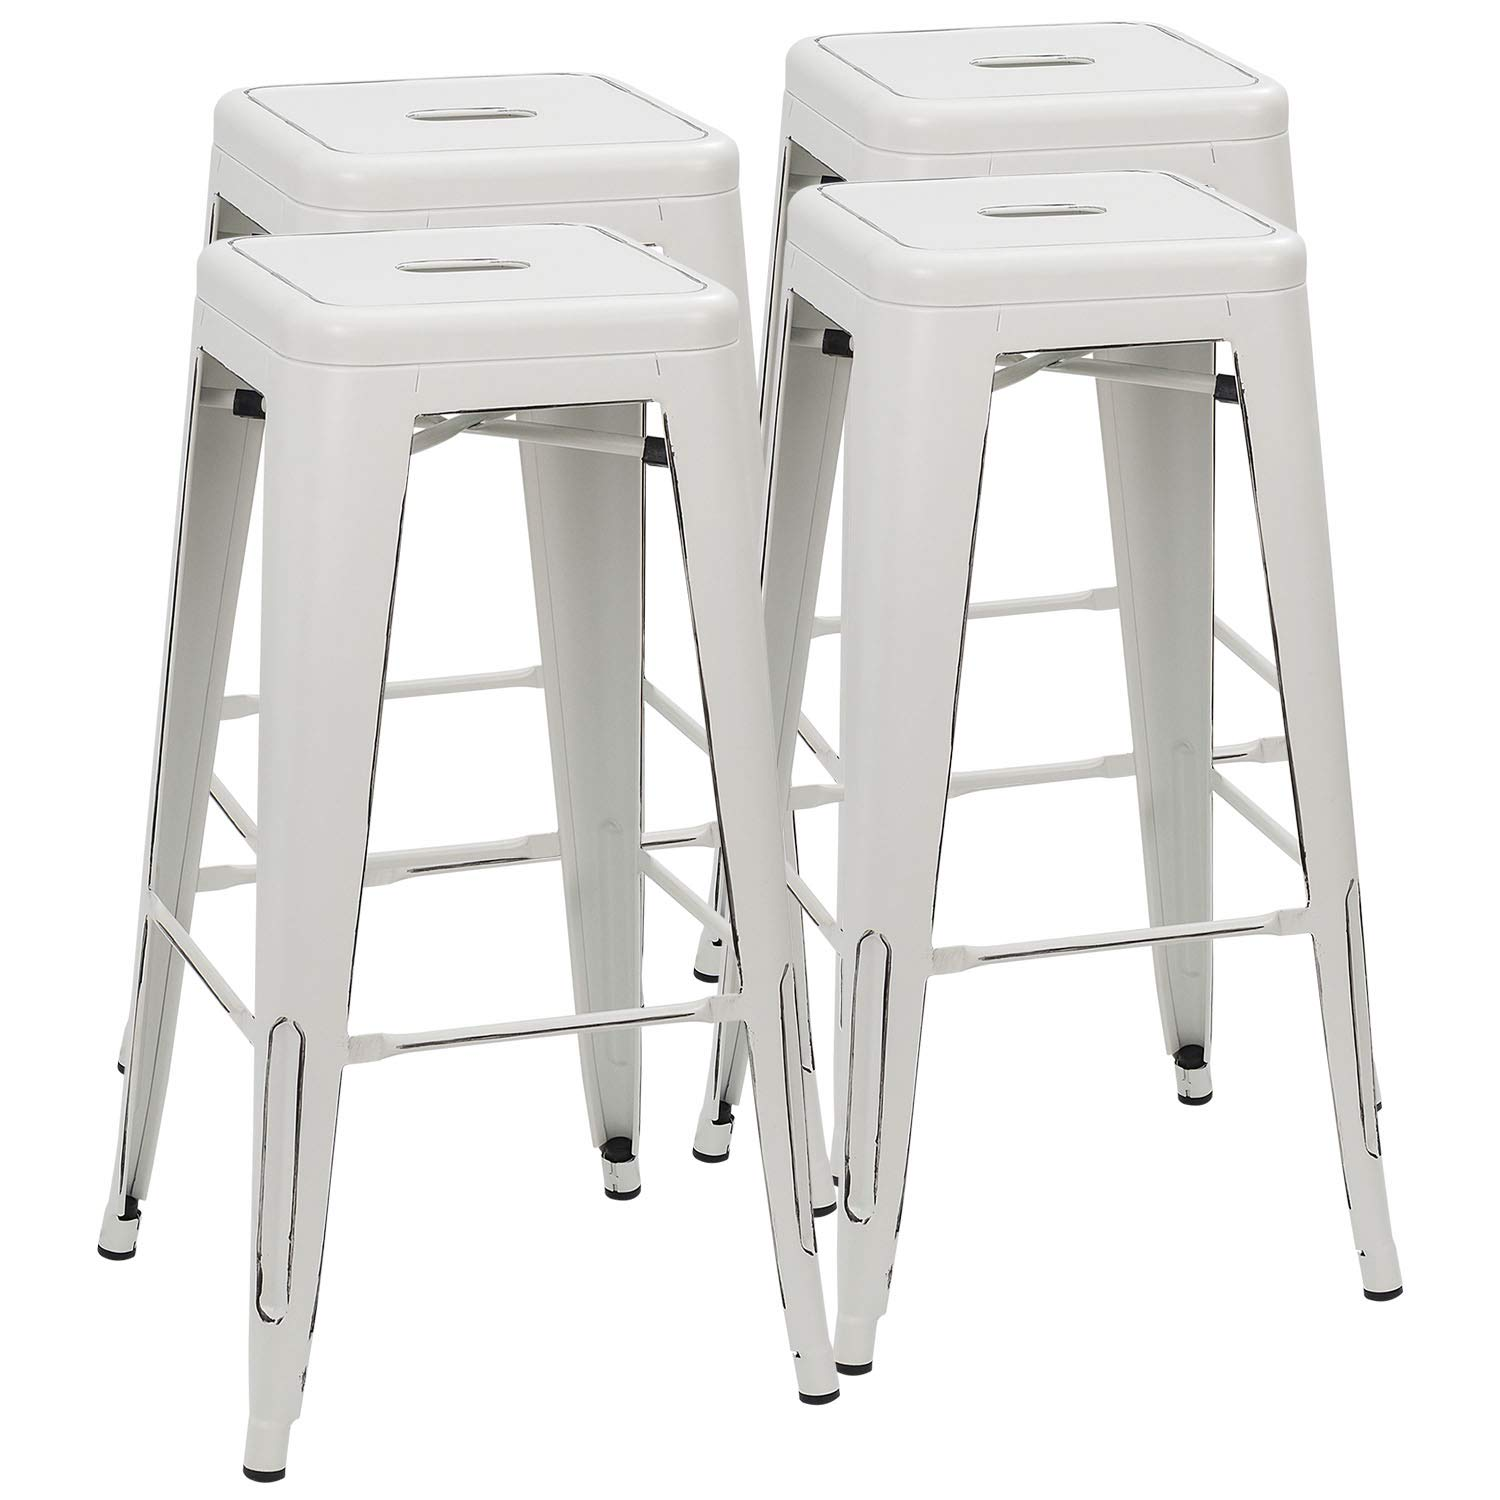 Furmax 30 Inches Distressed White Metal Bar Stools High Backless Stools Indoor-Outdoor Stackable Stools(Set of 4)